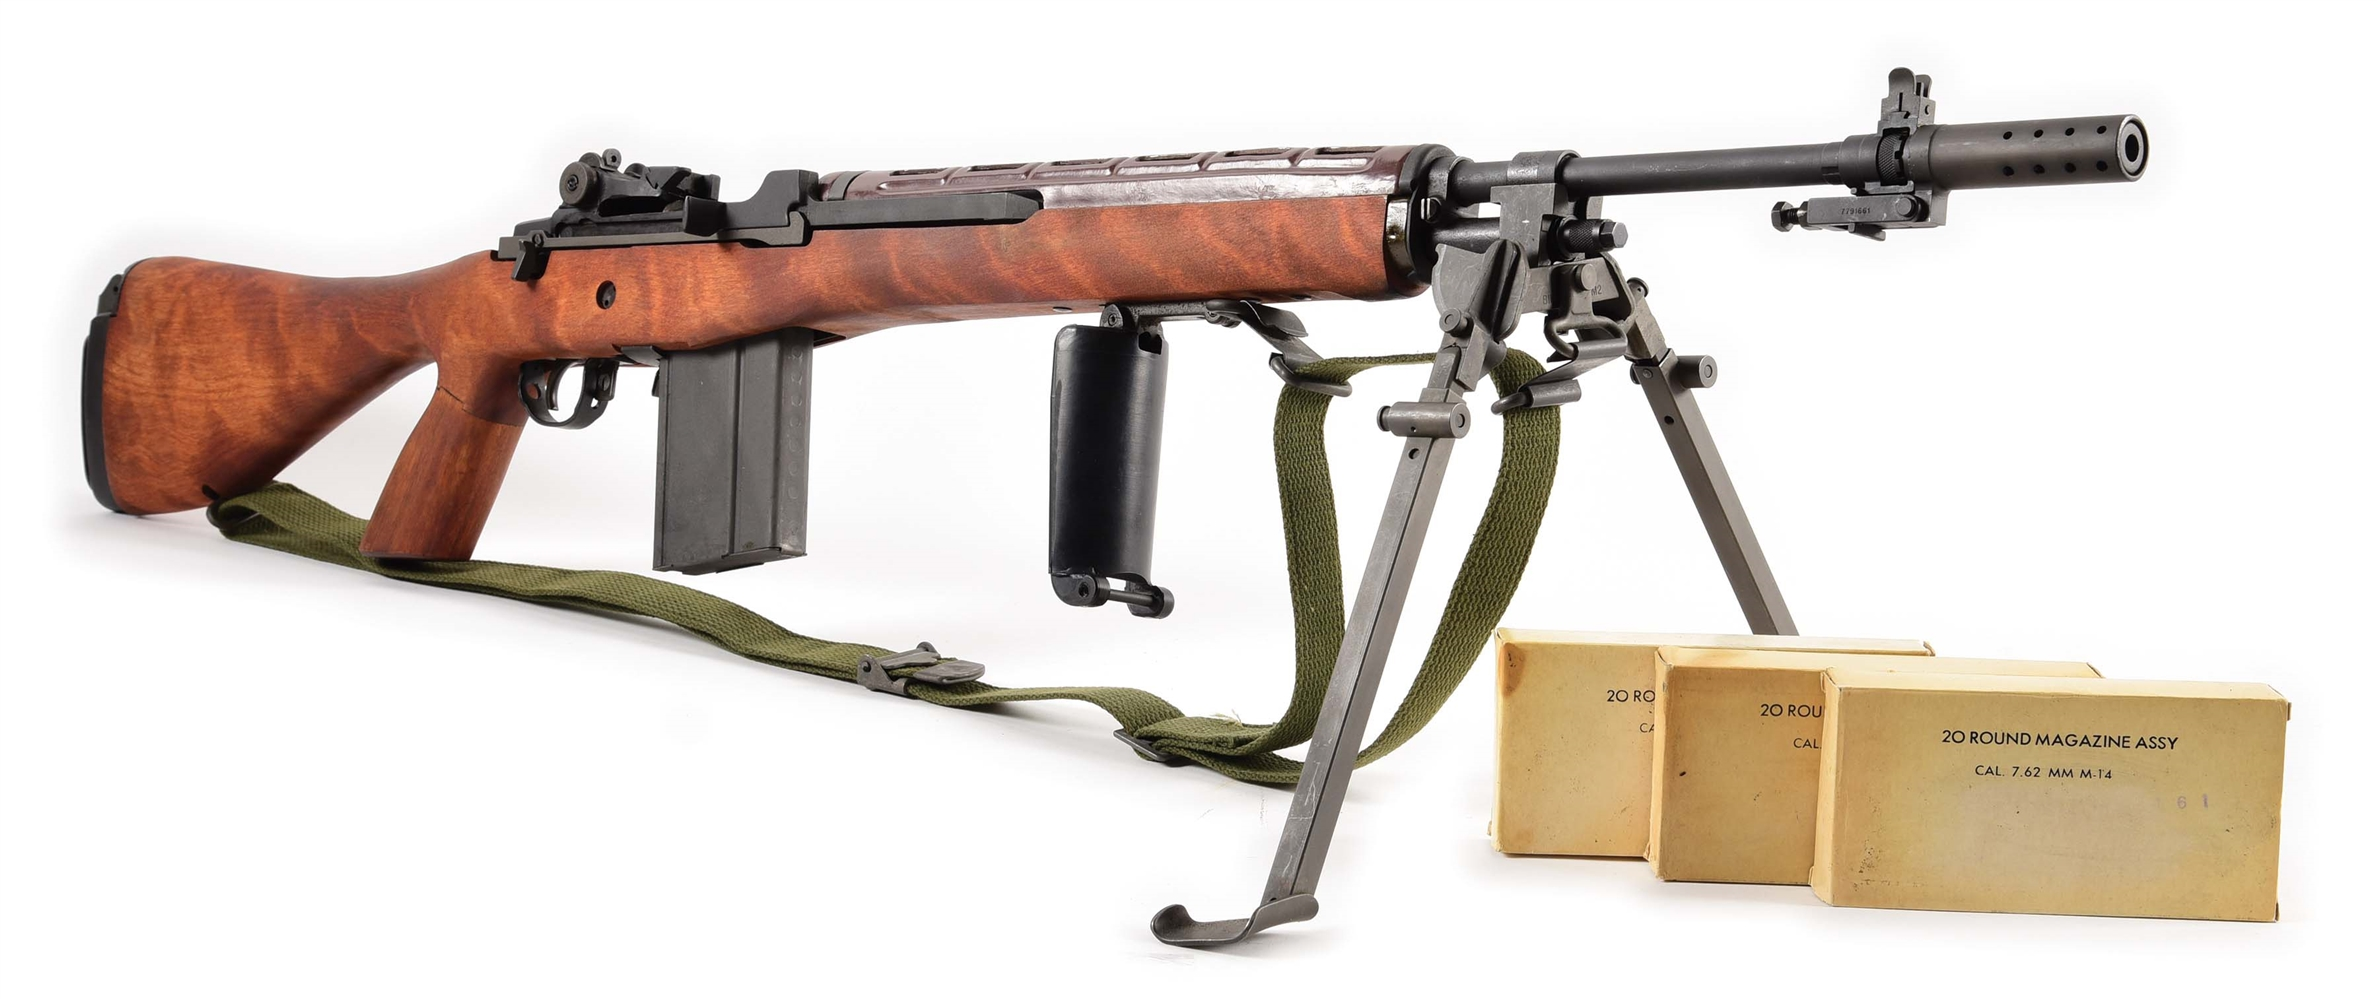 (N) MAGNIFICENT UNFIRED SPRINGFIELD ARMORY M1A-E2 CONVERTED TO M14 MACHINE GUN BY OZARK MOUNTAIN (FULLY TRANSFERABLE).